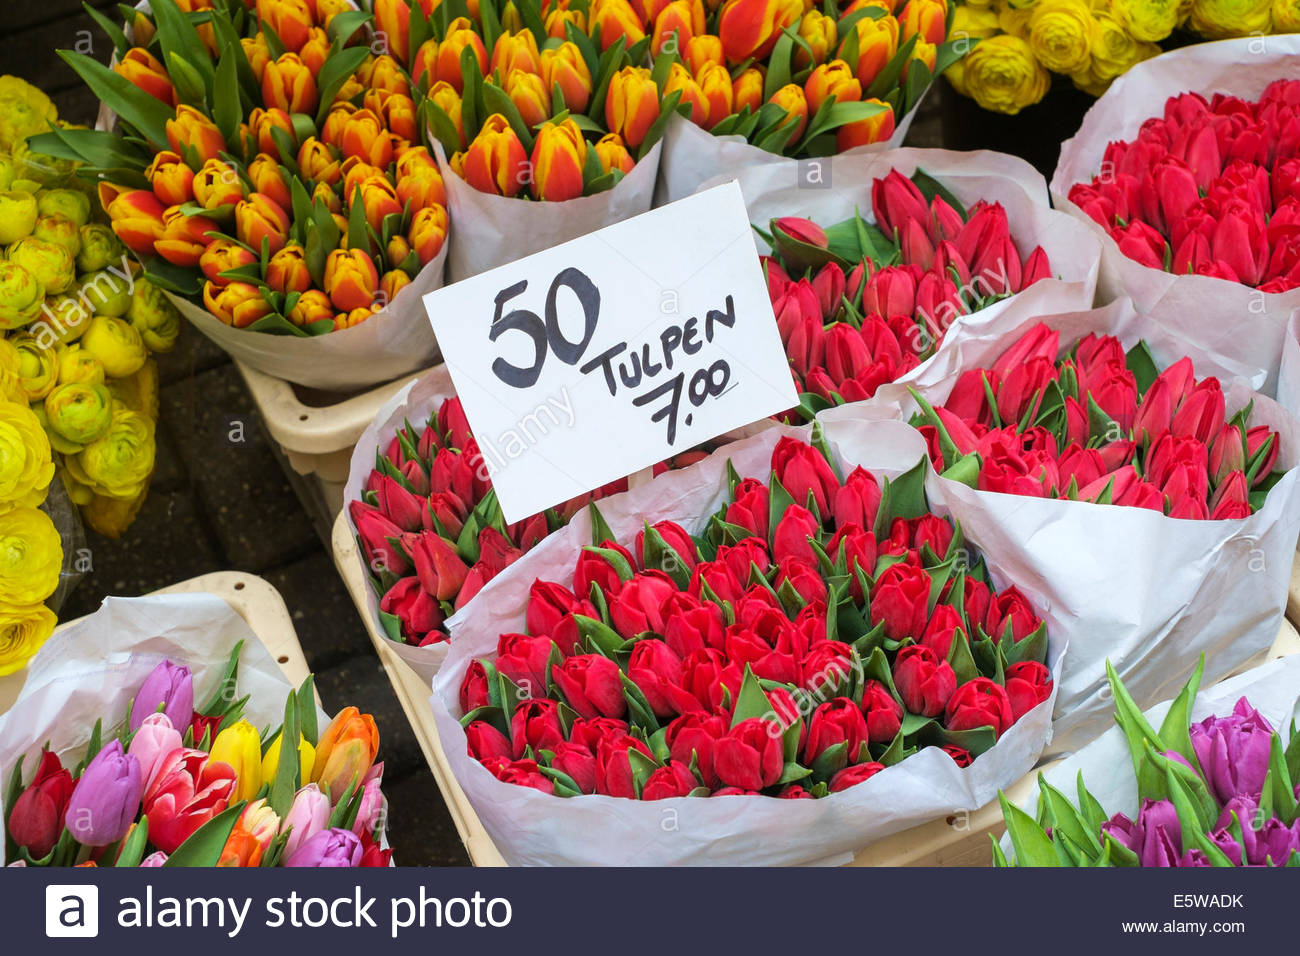 red tulips amsterdam flower market stockfotos red tulips amsterdam flower market bilder alamy. Black Bedroom Furniture Sets. Home Design Ideas